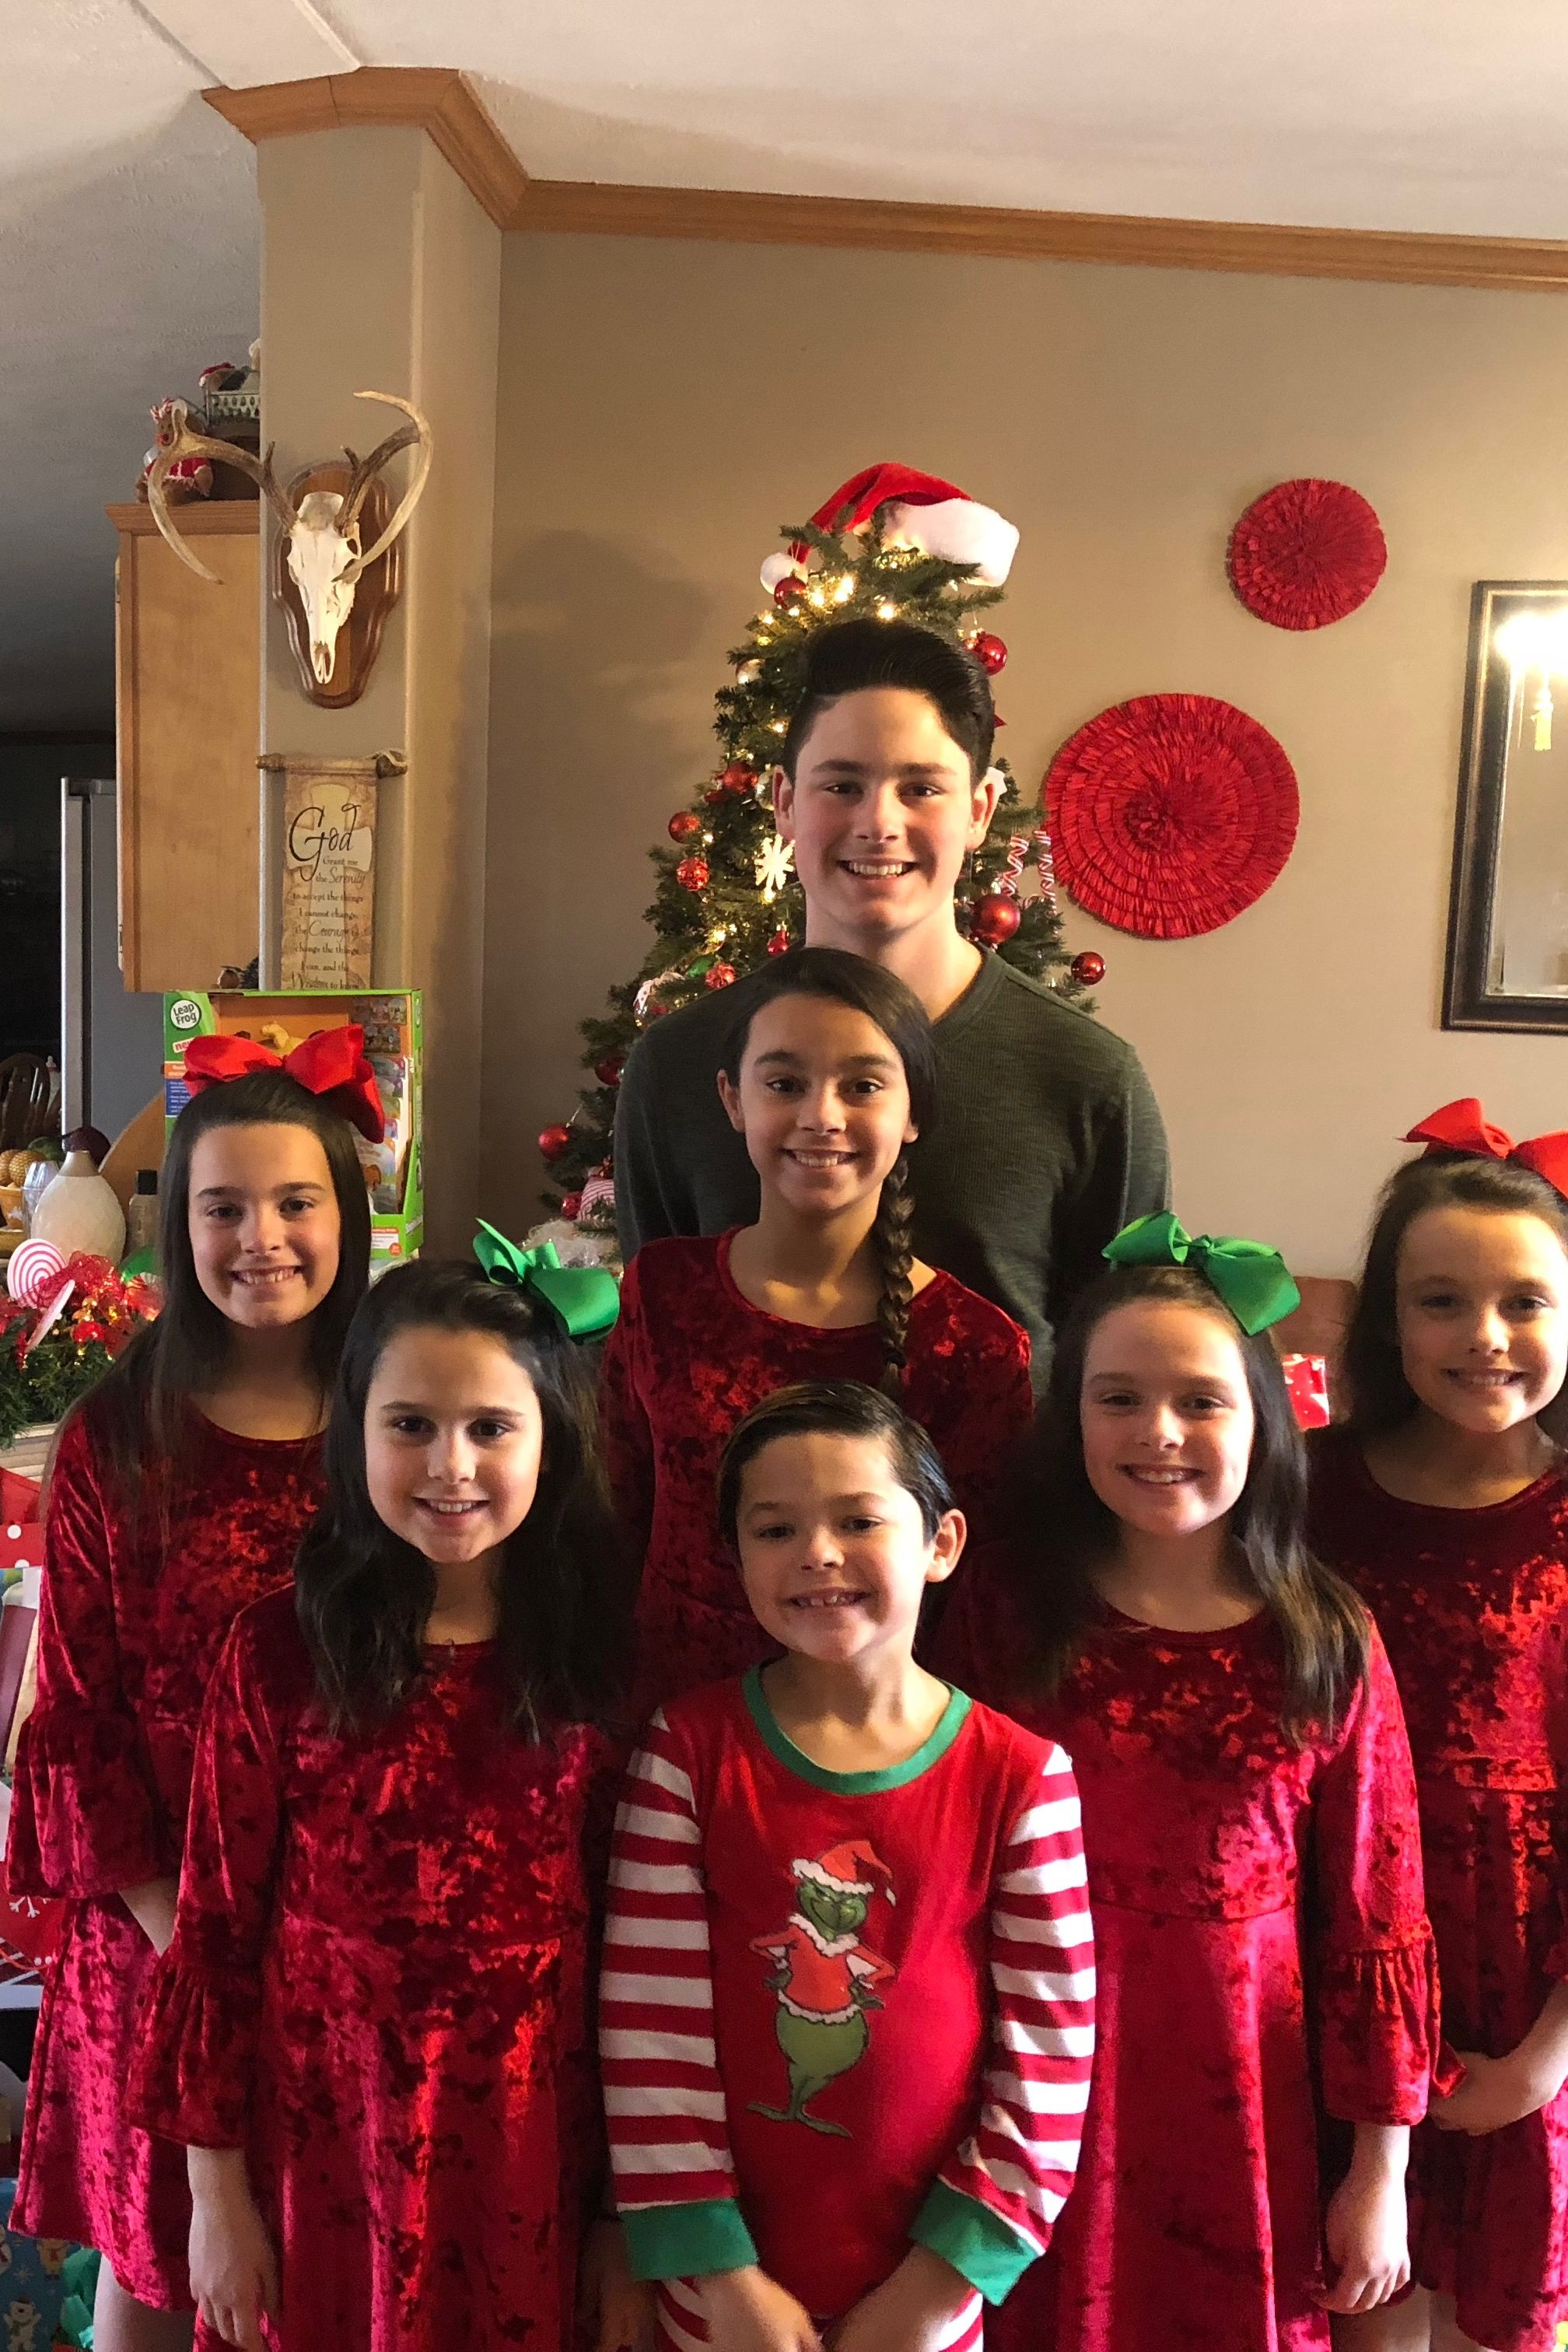 7 Siblings Adopted Together Just in Time for Christmas: We're a 'Complete Family,' Dad Says